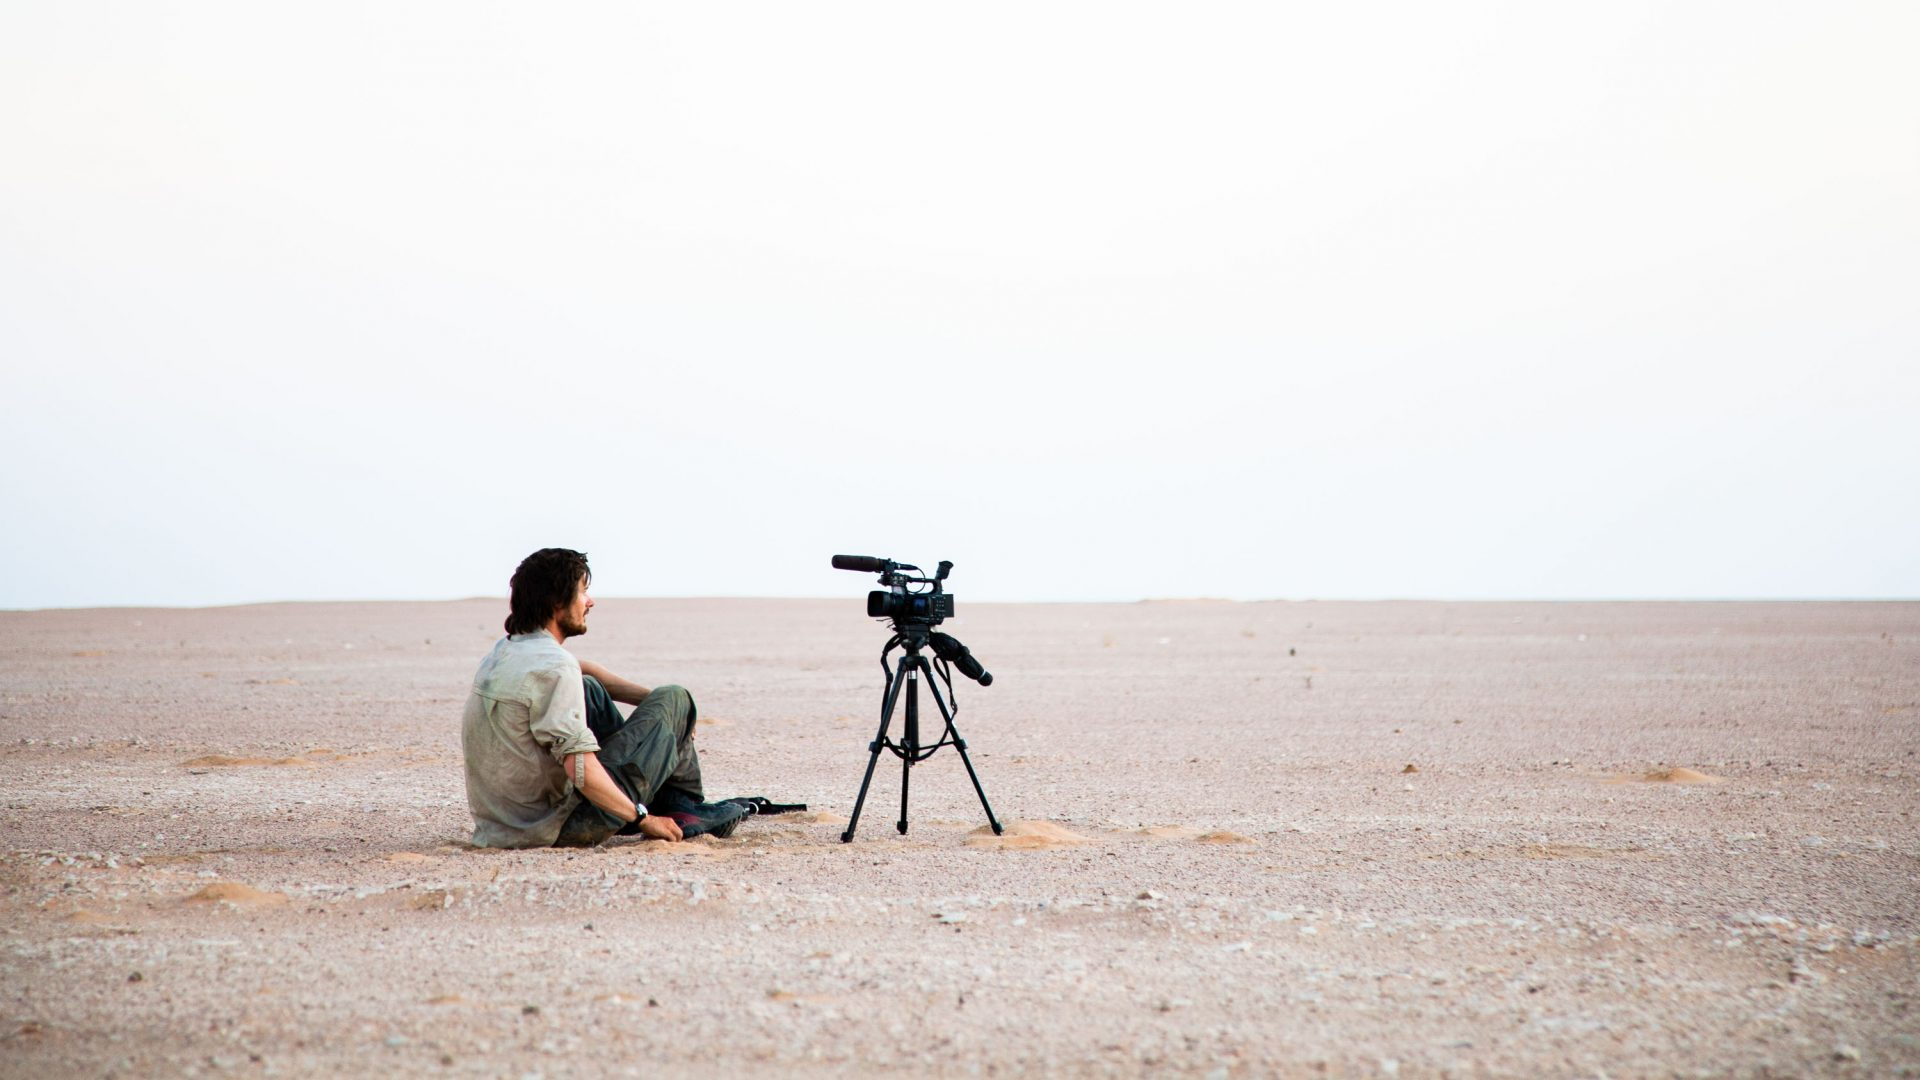 How to make an award-winning adventure film (without budget or crew)